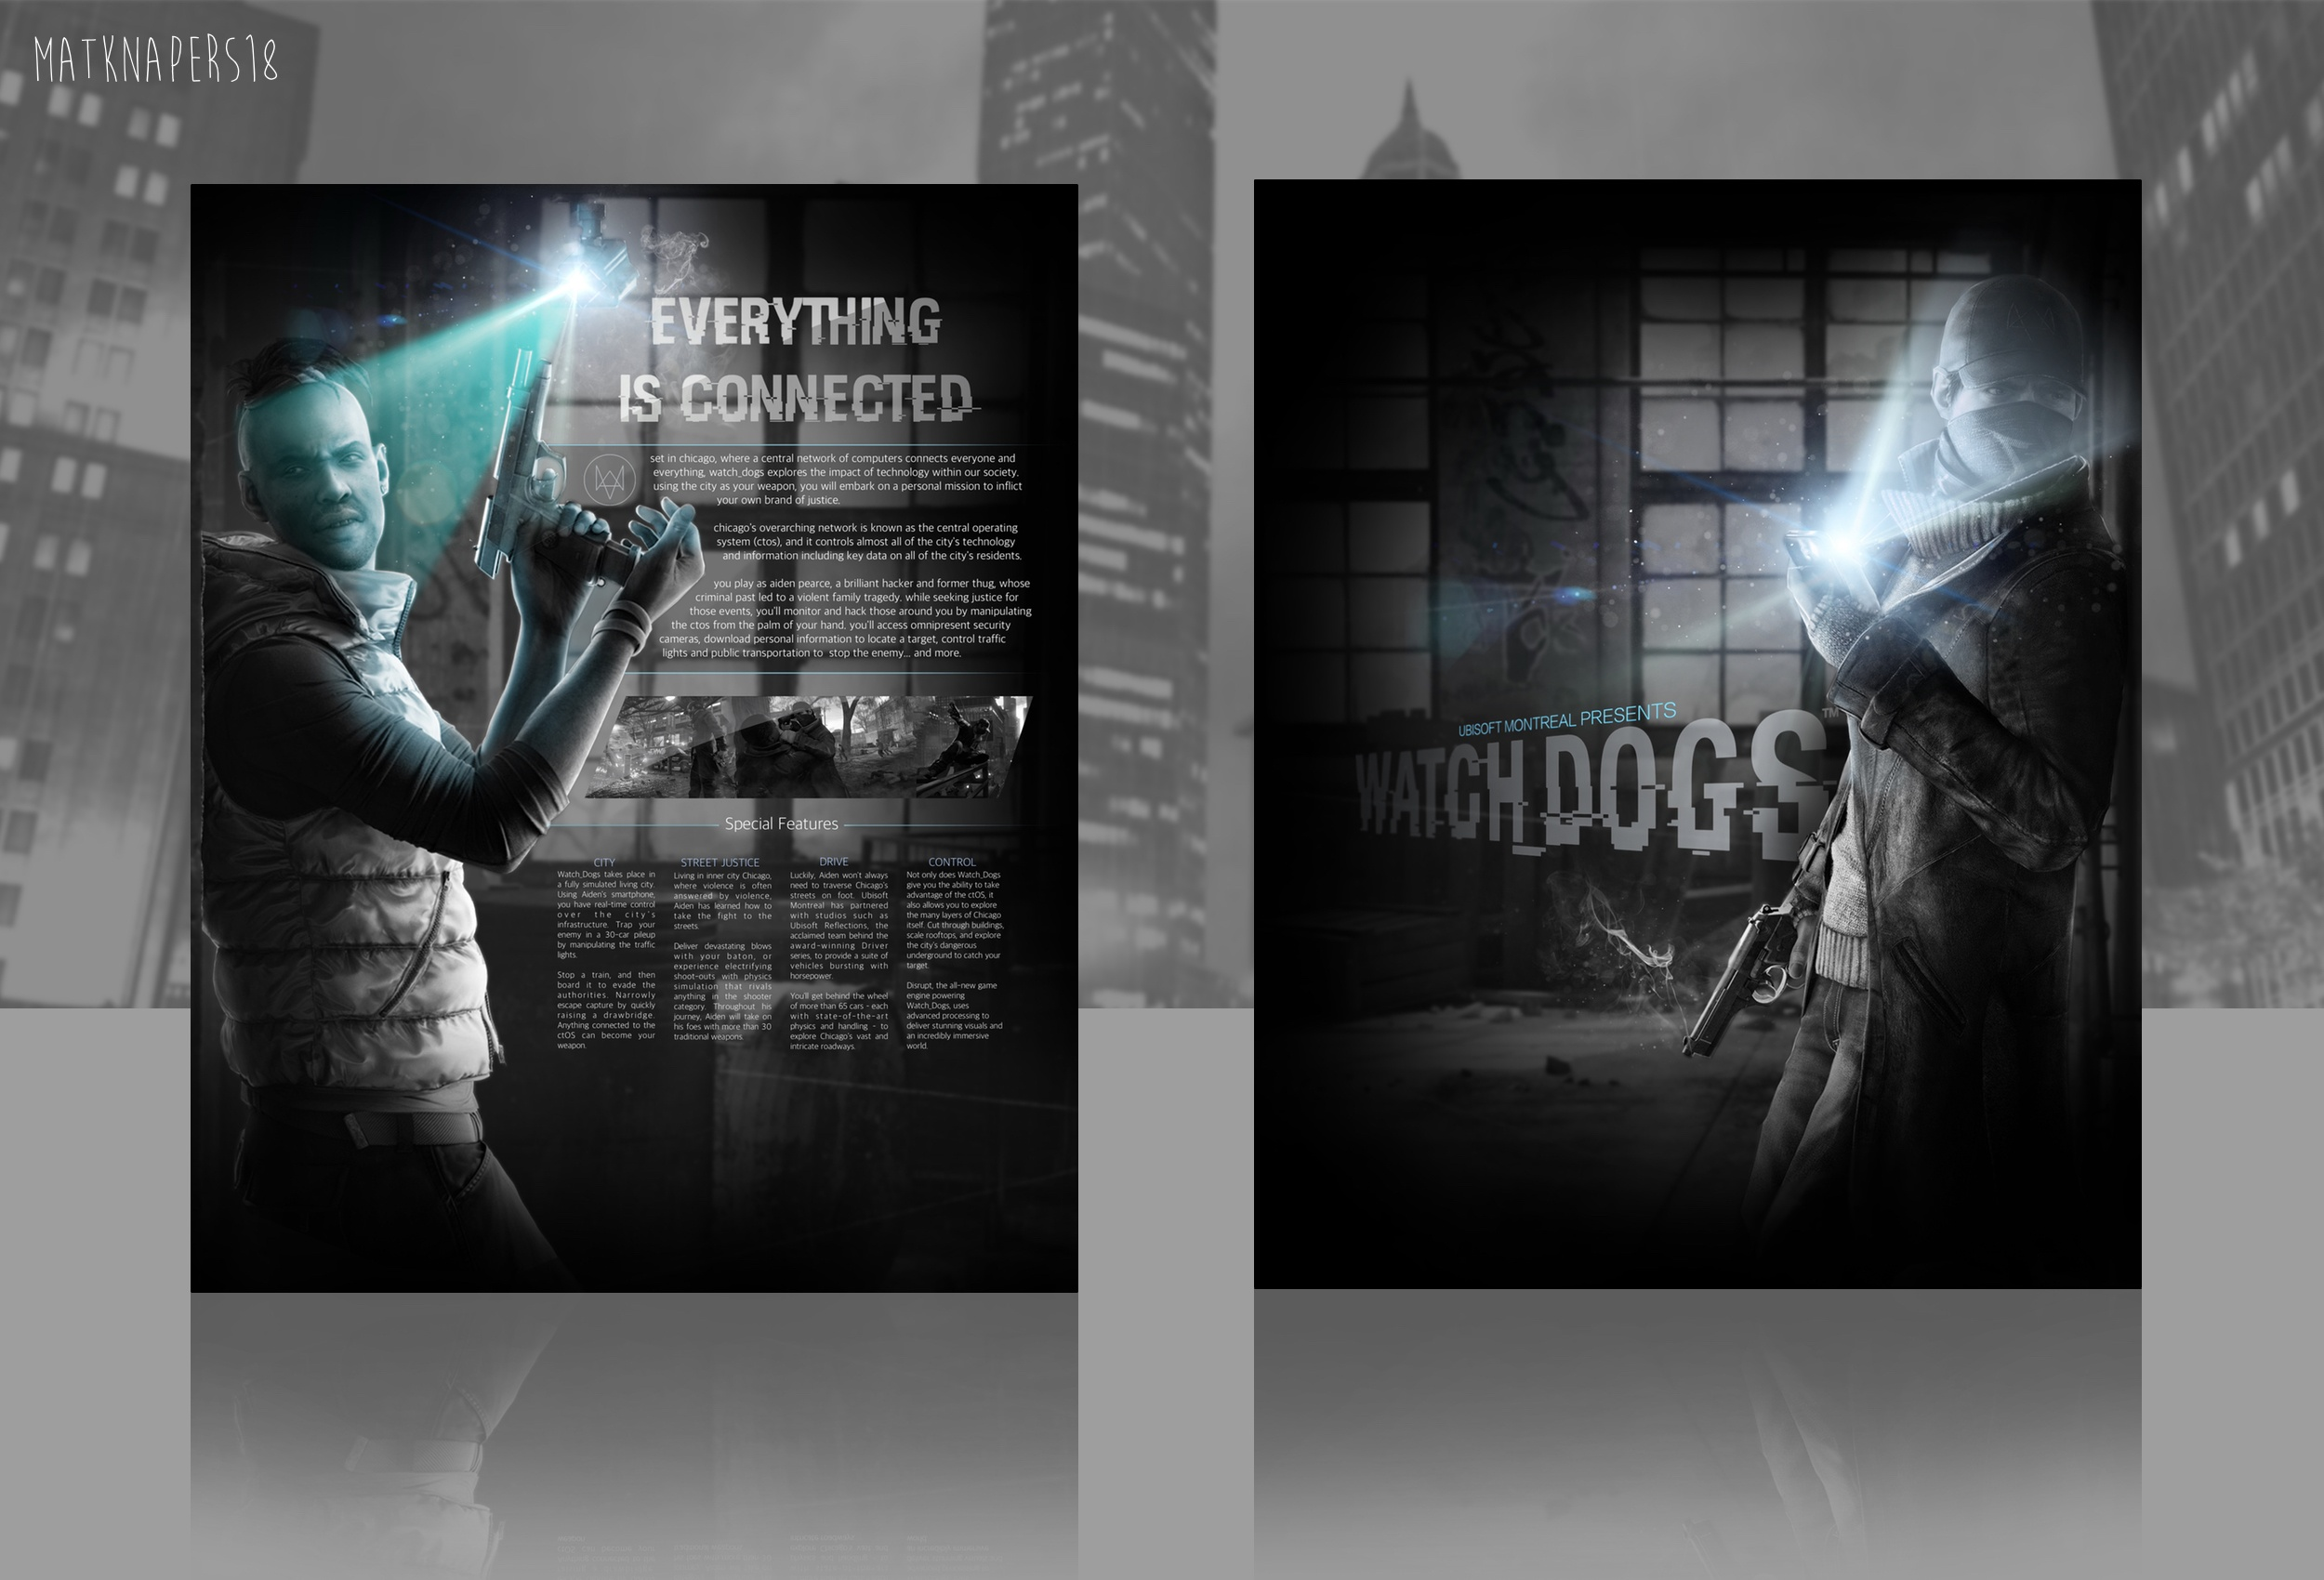 Watch Dogs box cover